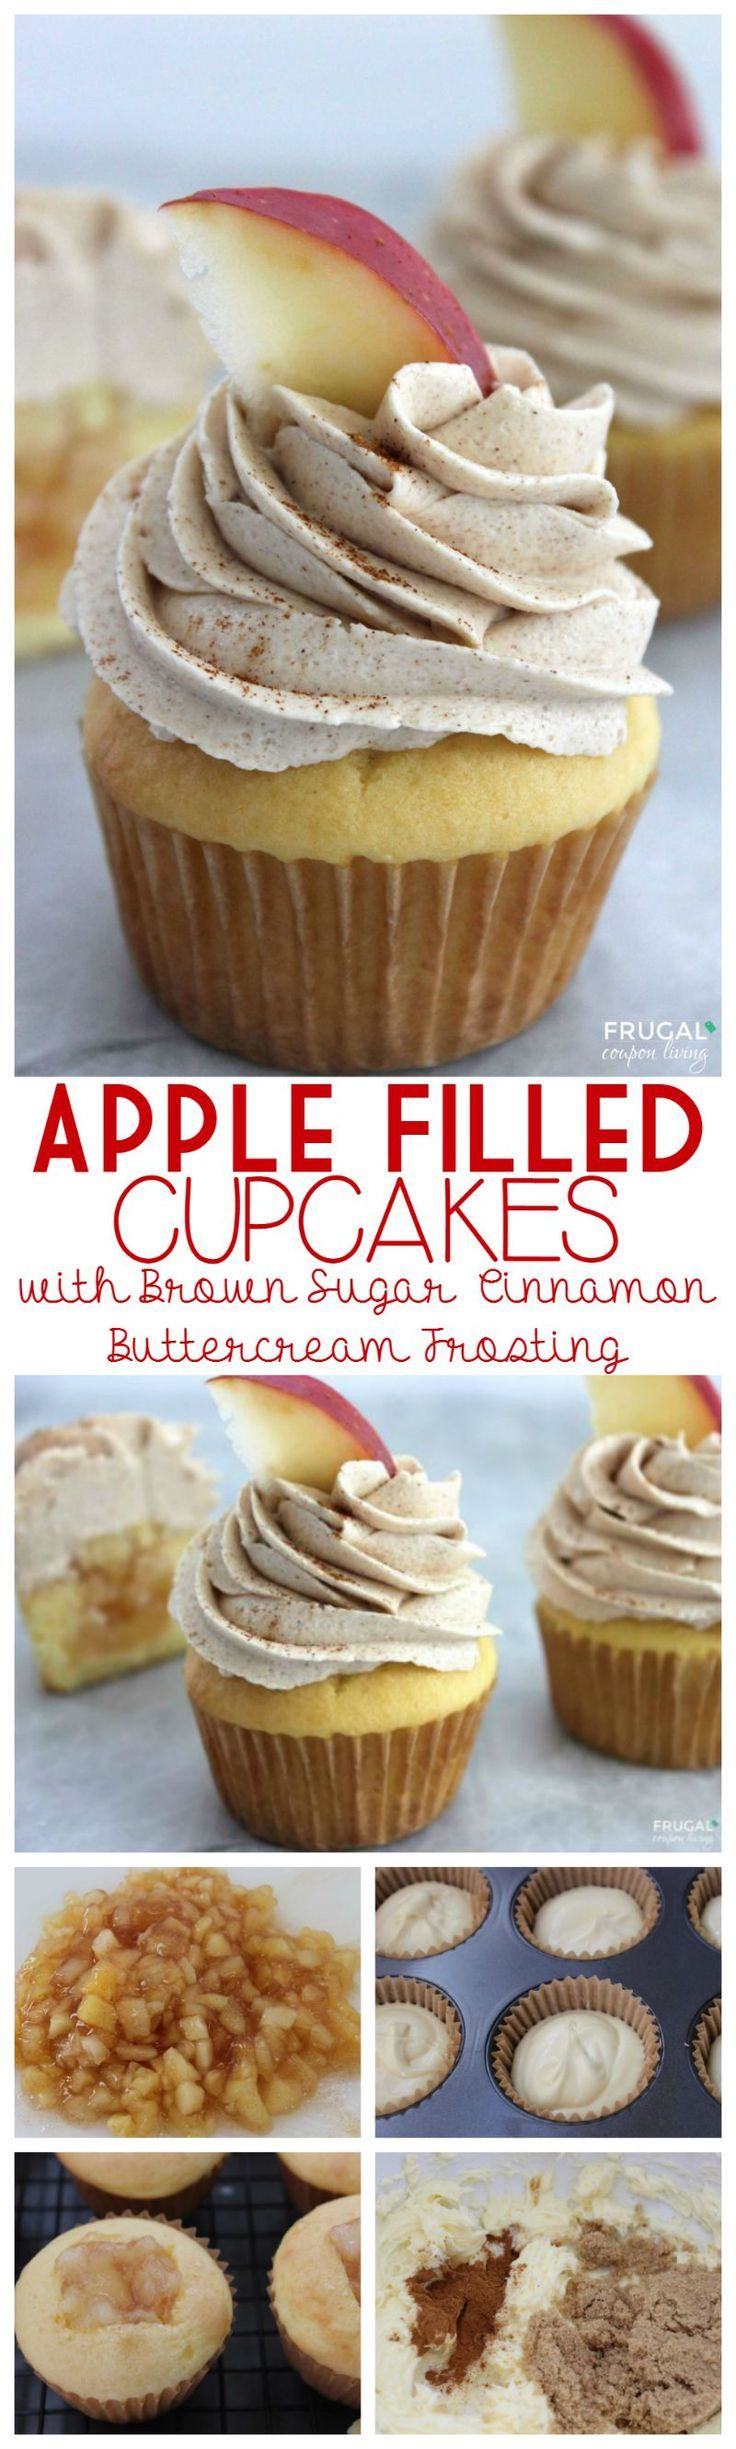 Brown Sugar-Pecan Cupcakes With Caramel Frosting Recipe — Dishmaps